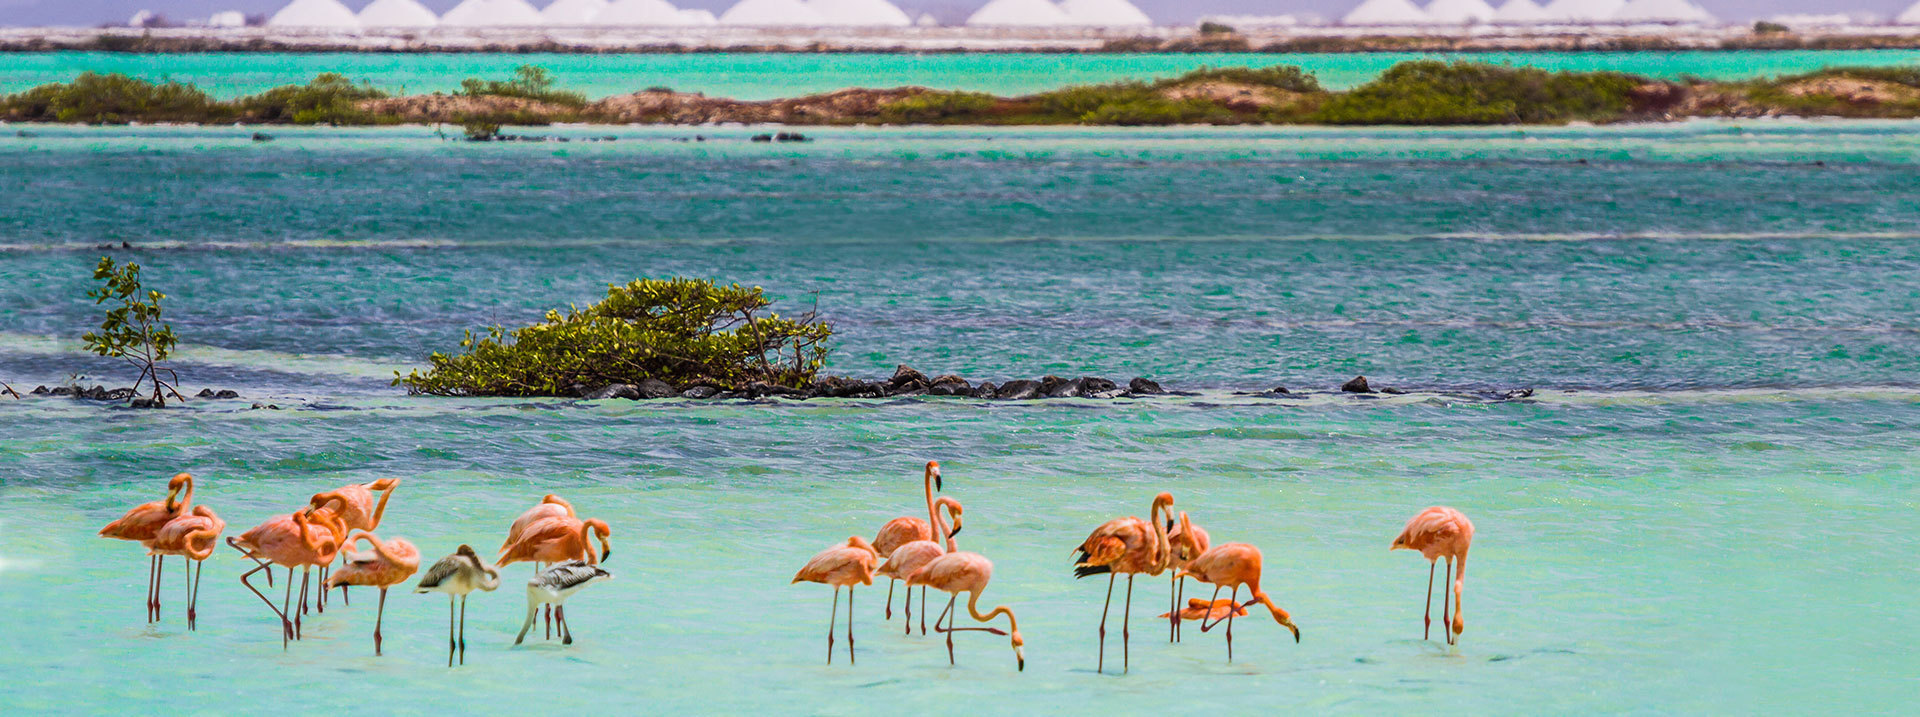 flock of flamingos standing in shallow water